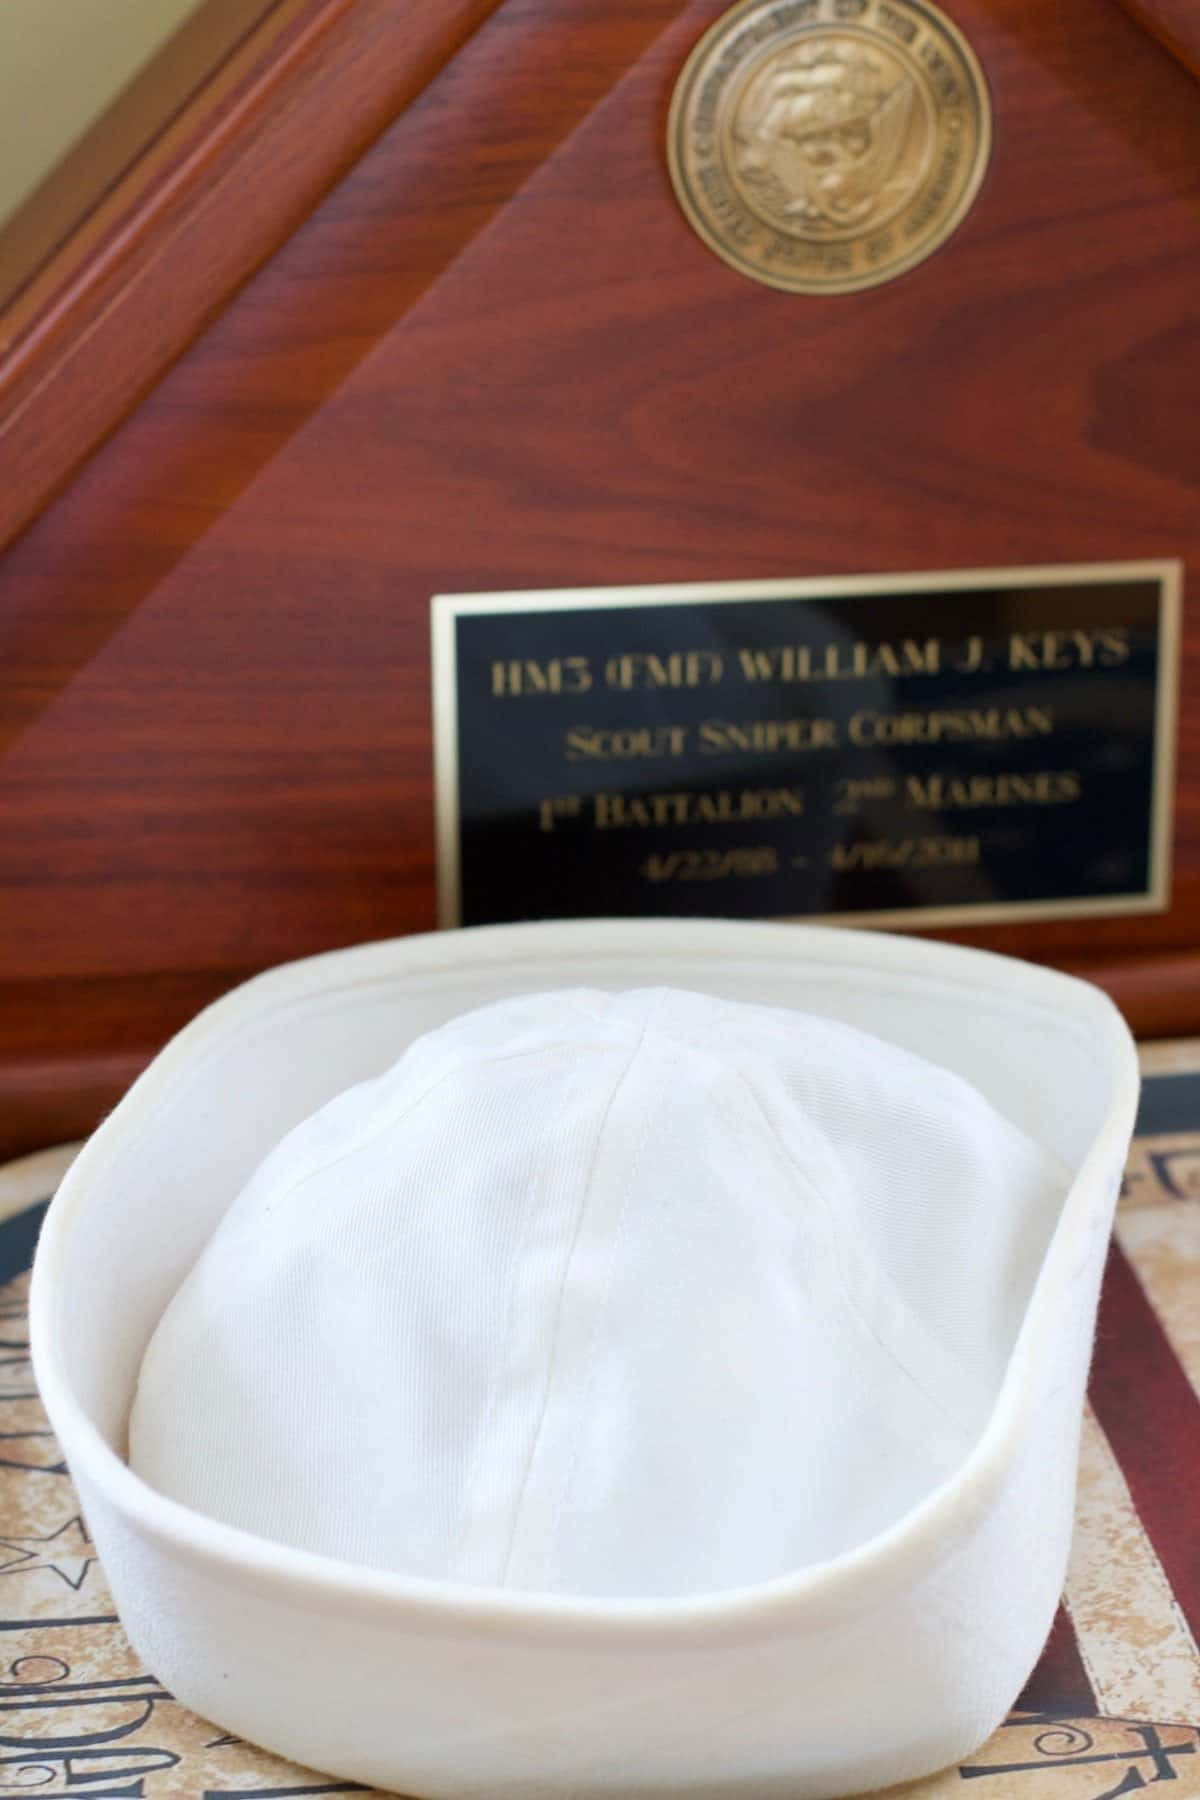 white sailor cap is one of my favorites of the many hats he wore